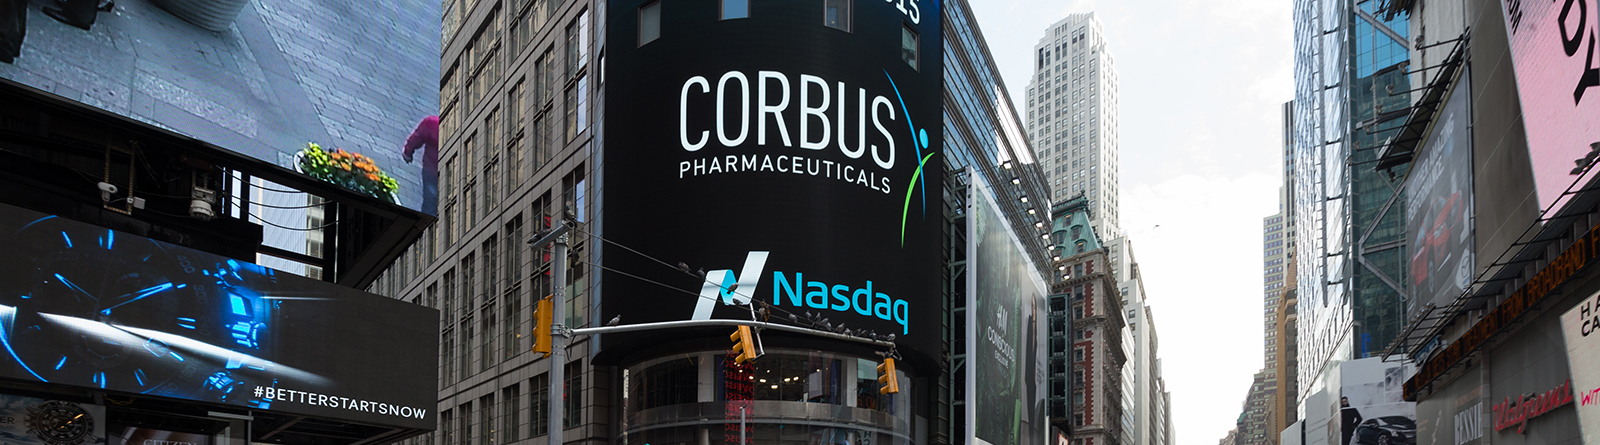 Corbus Pharmaceuticals Completes $10.3 Million Private Placement Banner